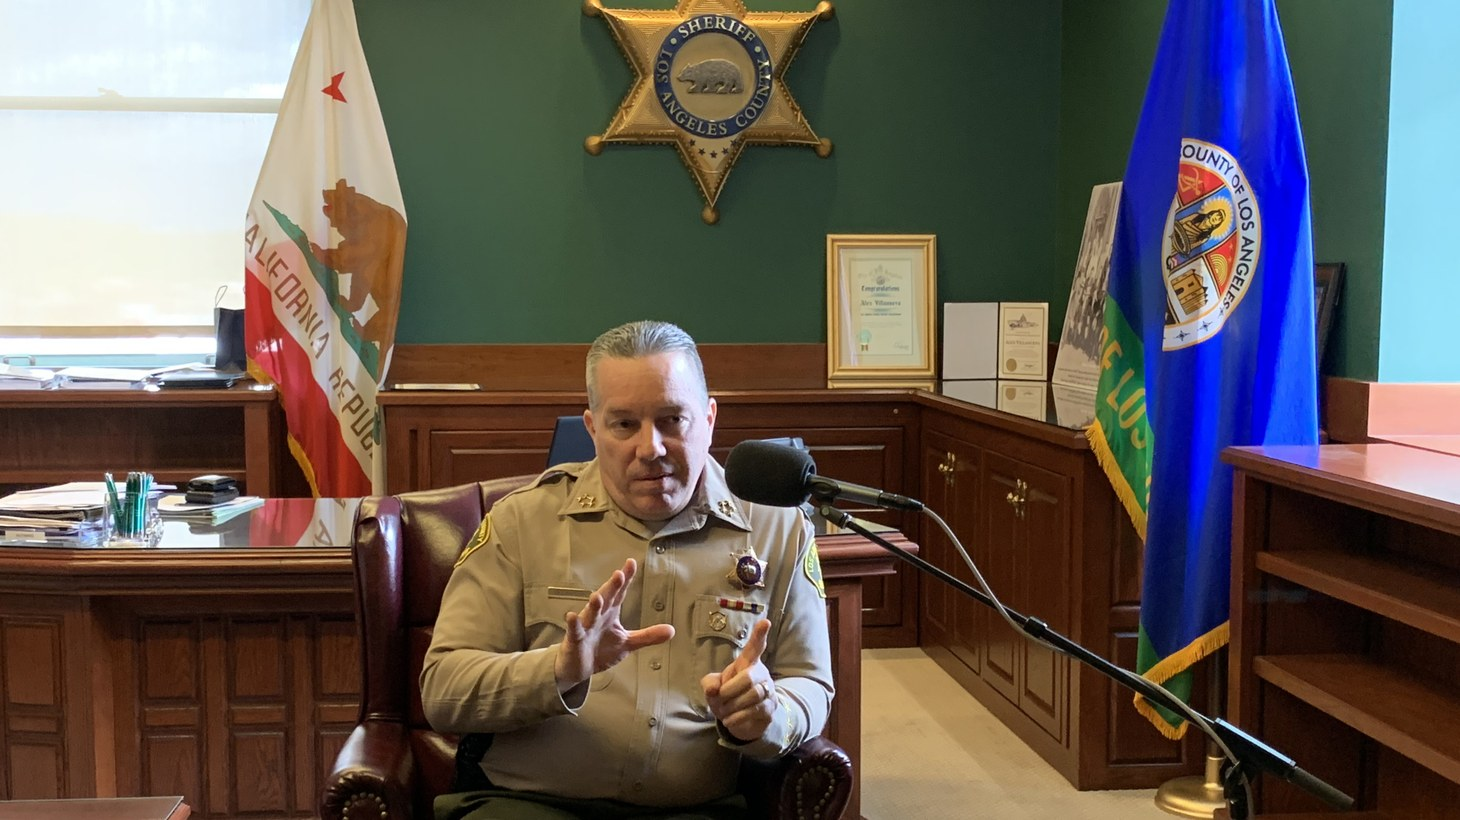 Sheriff Villanueva in an interview with KCRW at his office at the Hall of Justice in downtown Los Angeles, on March 21, 2019.